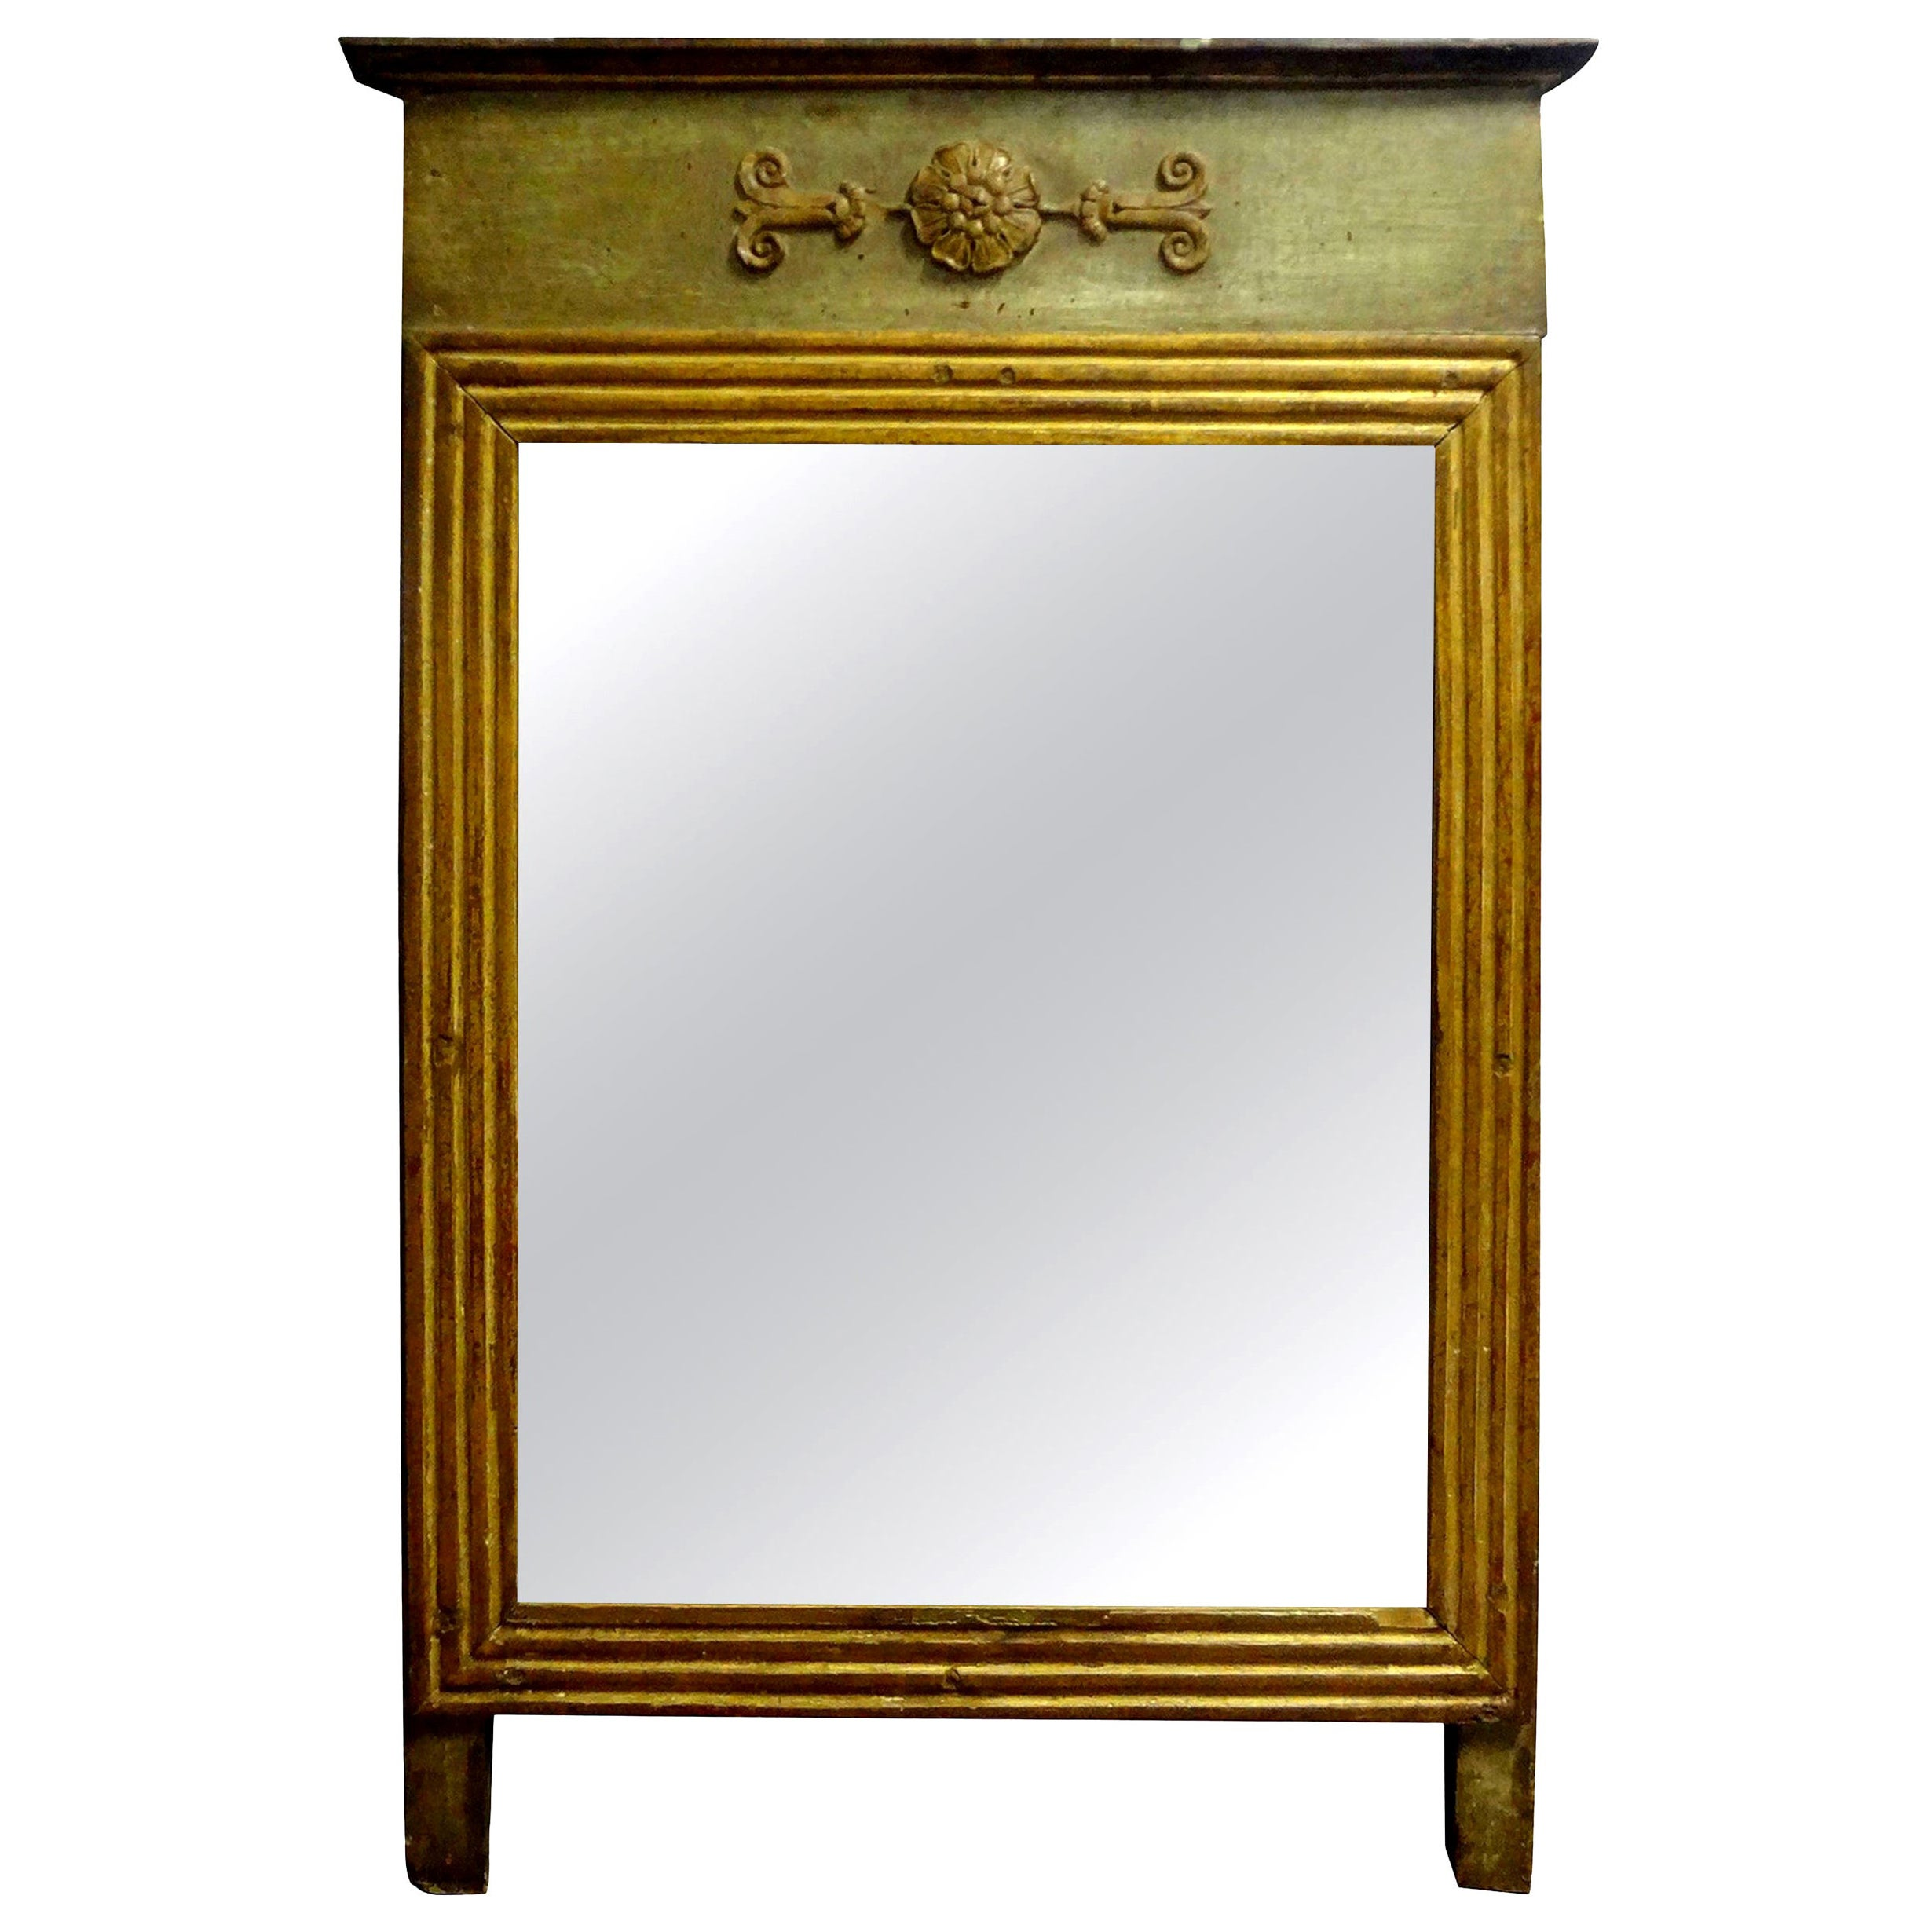 19th Century French Louis XVI Style Painted and Giltwood Mirror